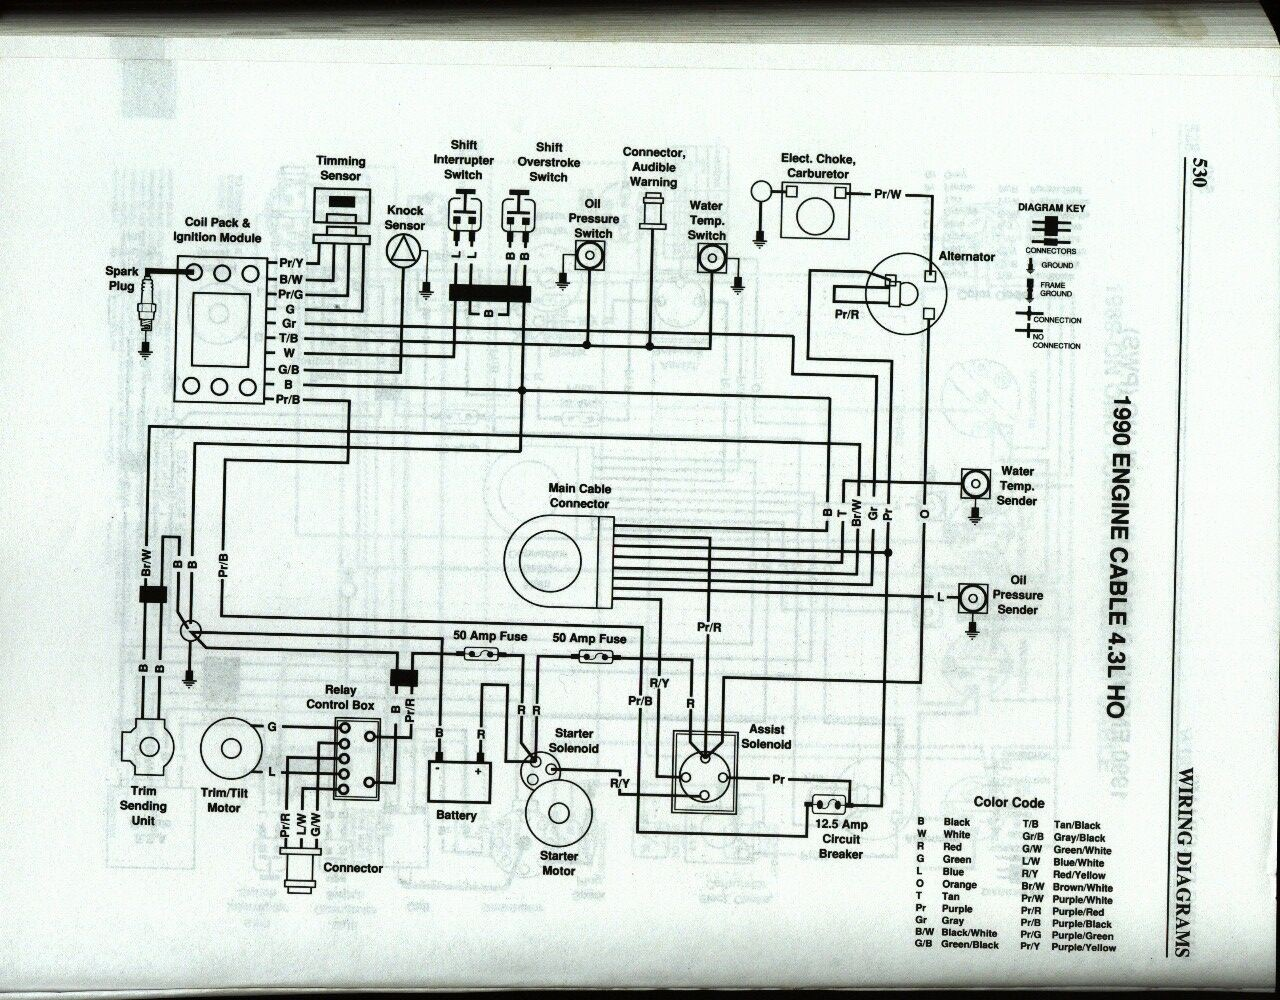 1979 checkmate wiring diagram wiring library 1979 Checkmate Wiring Diagram 1979 checkmate wiring diagram wiring